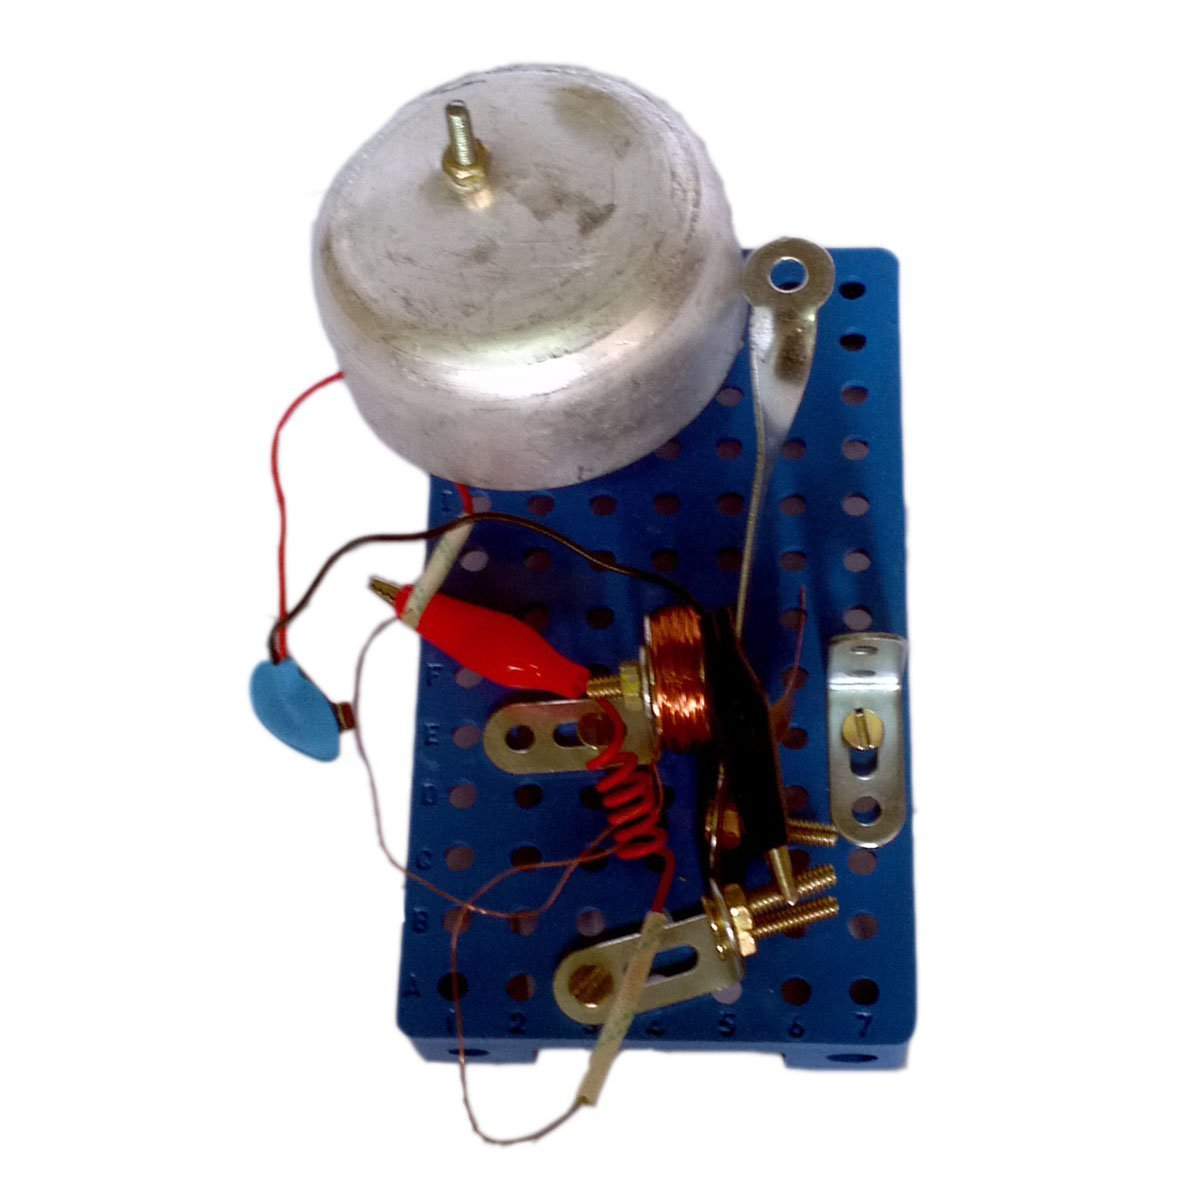 Buy funwood games electric bell do it yourself kit for school funwood games electric bell do it yourself kit for school science projects solutioingenieria Gallery